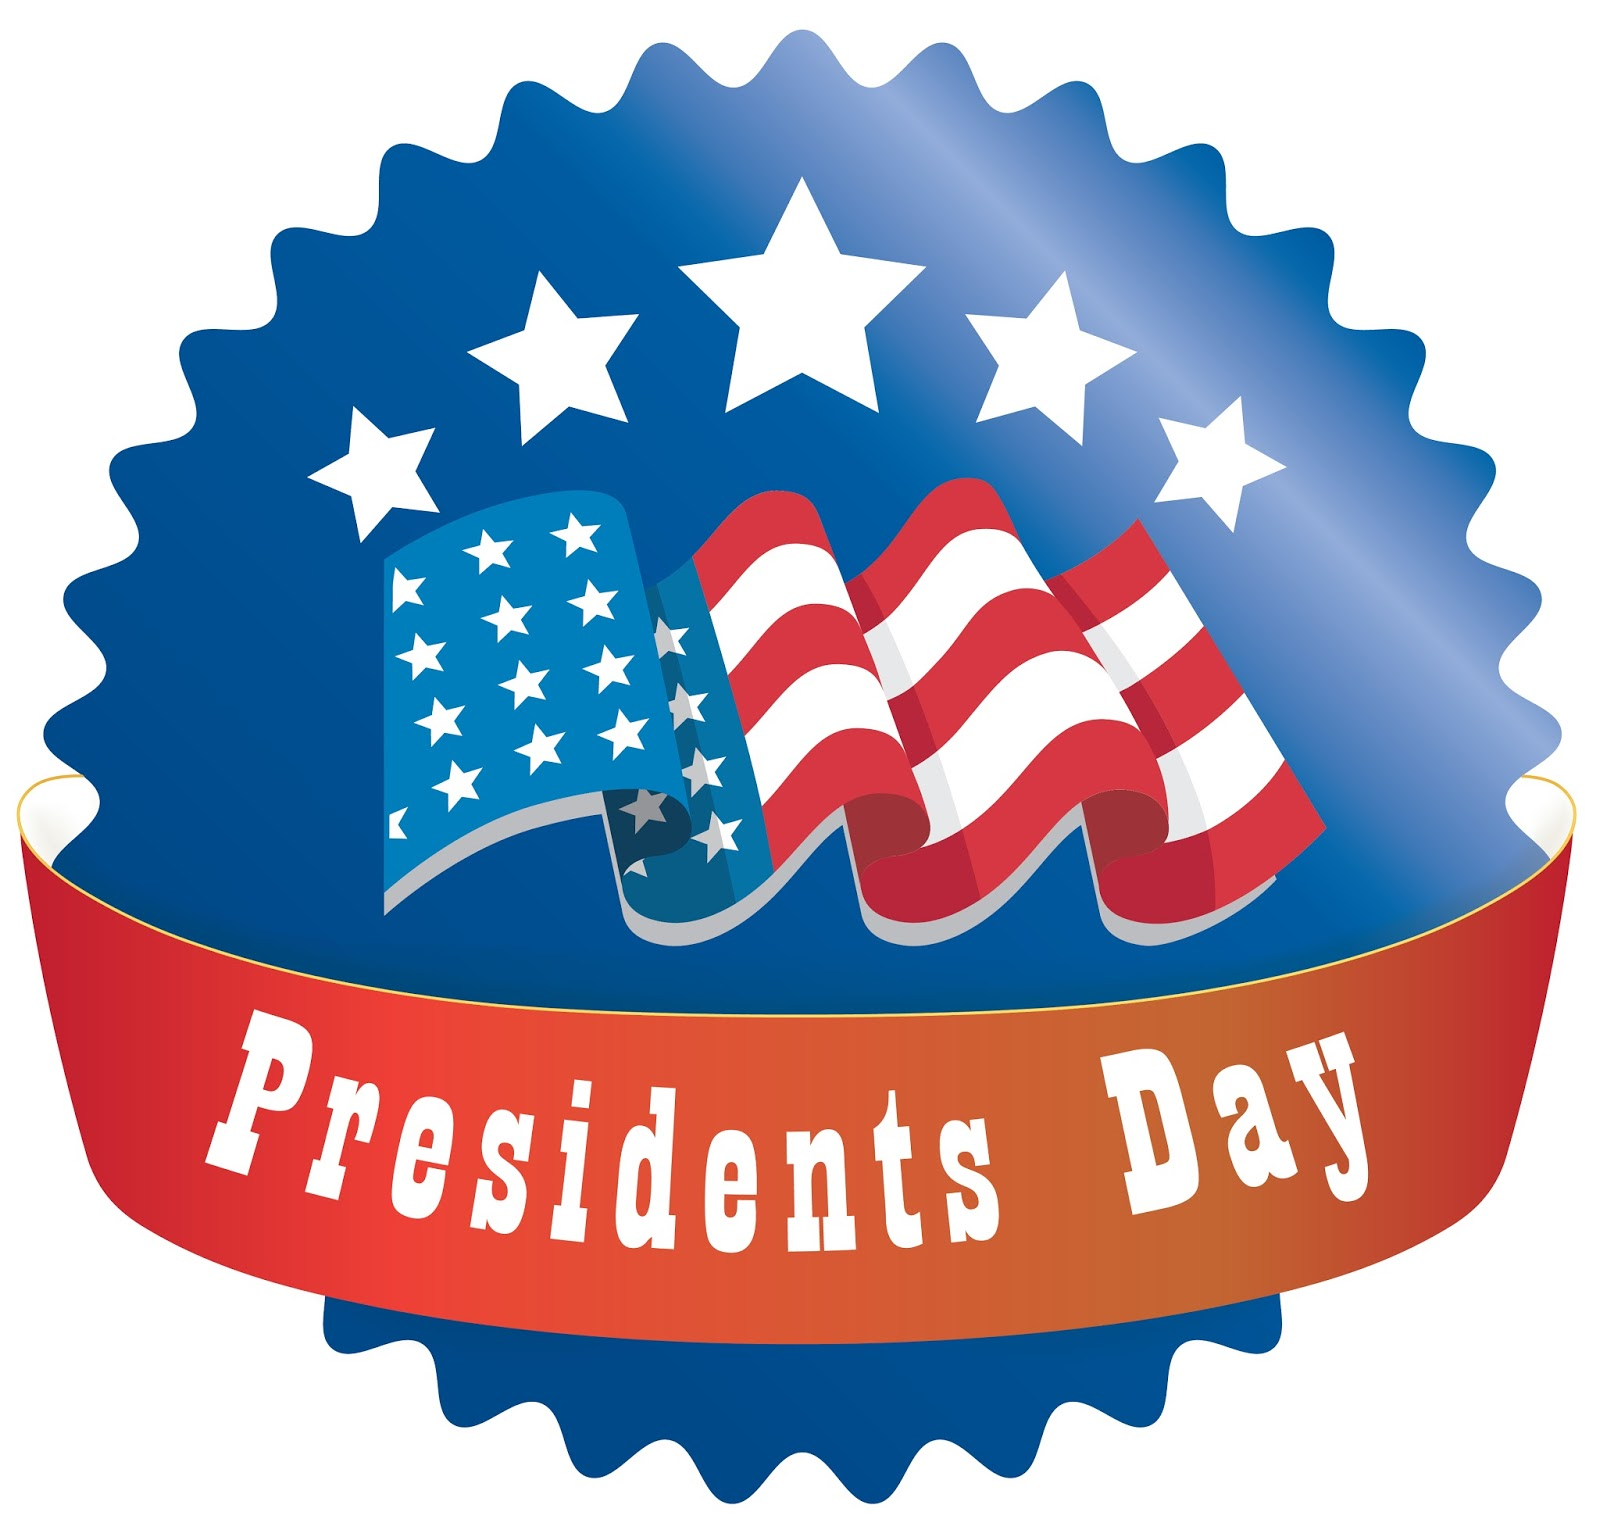 Presidents Day Clipart Images.